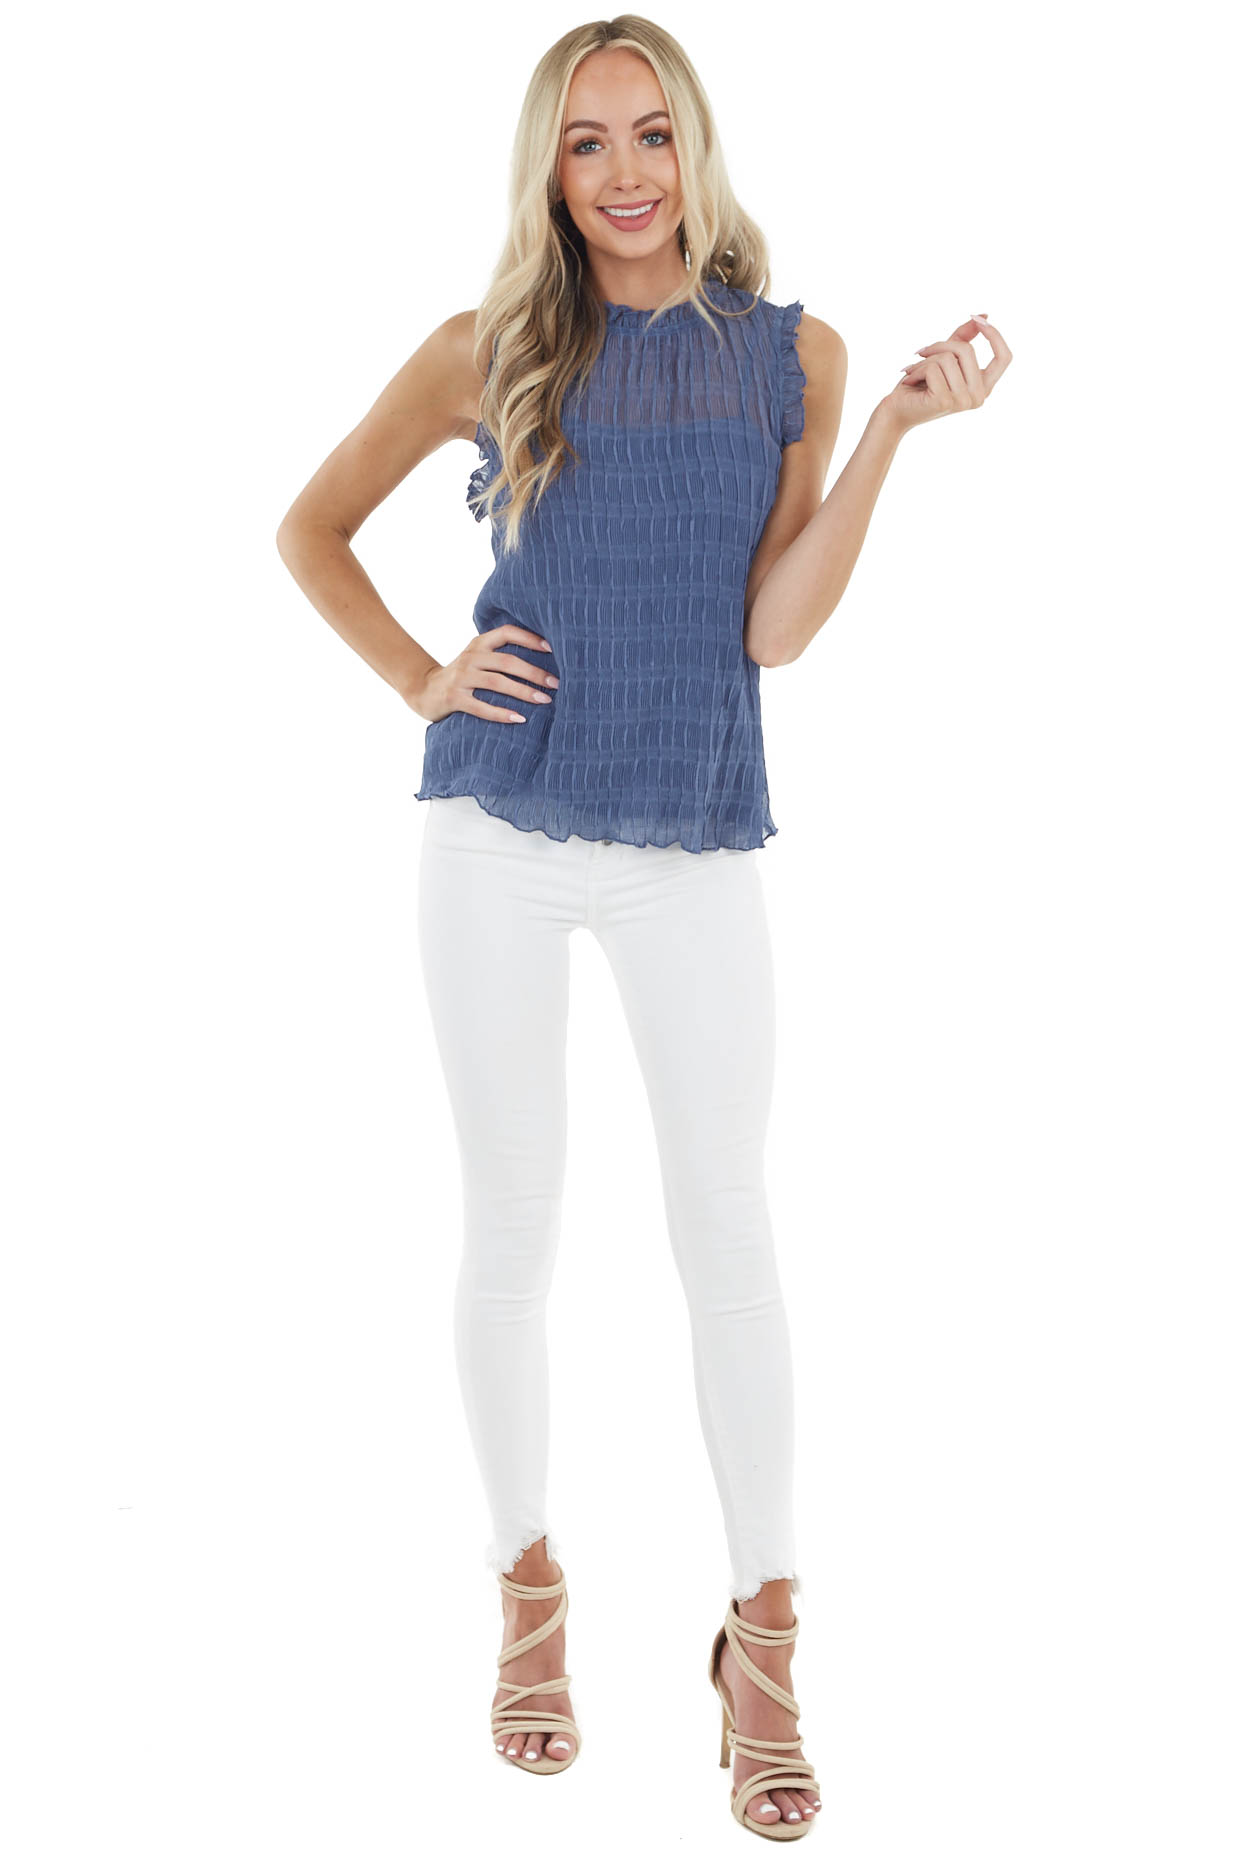 Dusty Blue Accordion Textured Sleeveless Blouse with Frills